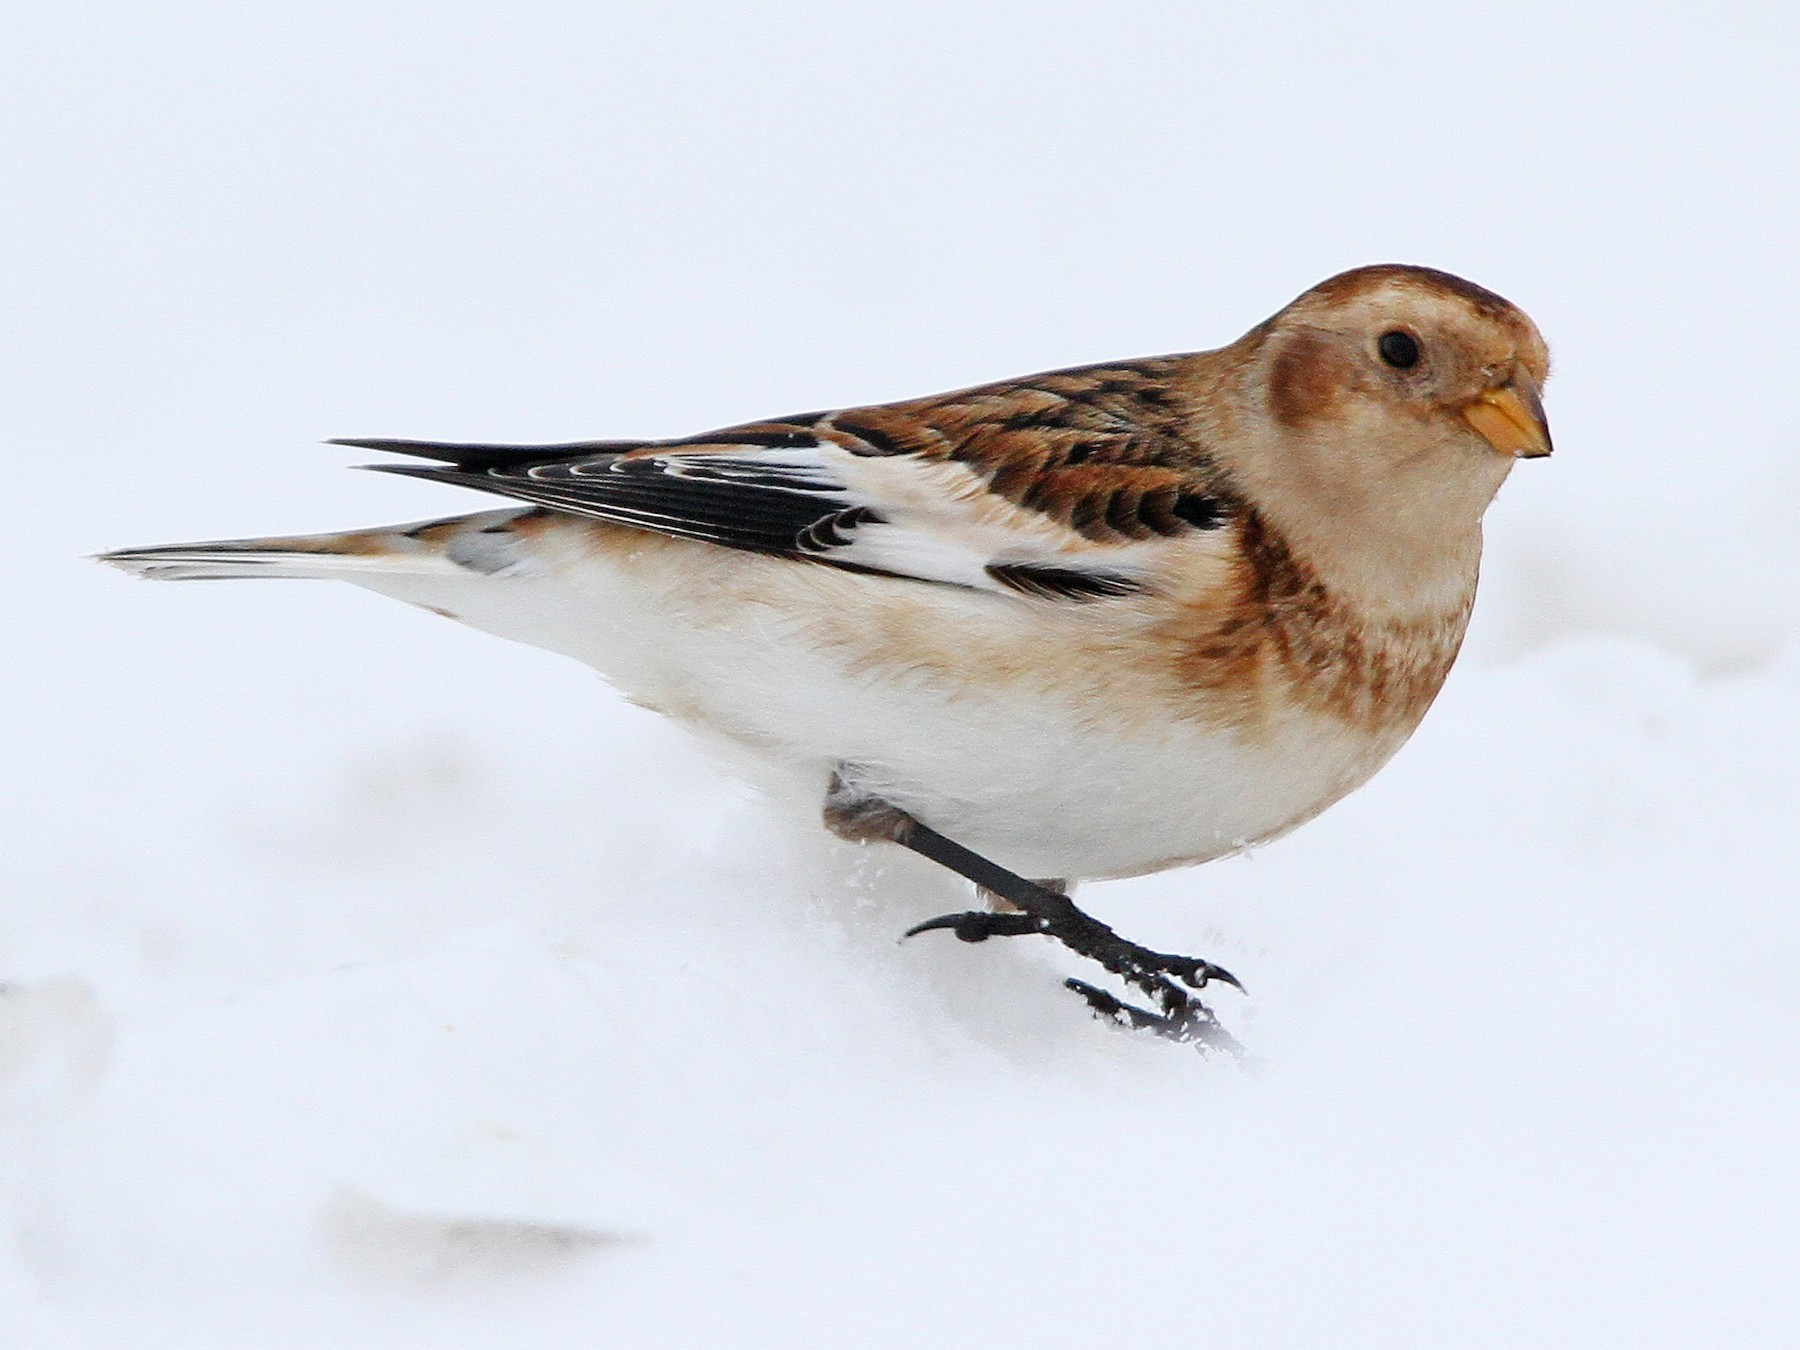 Snow Bunting - Christoph Moning